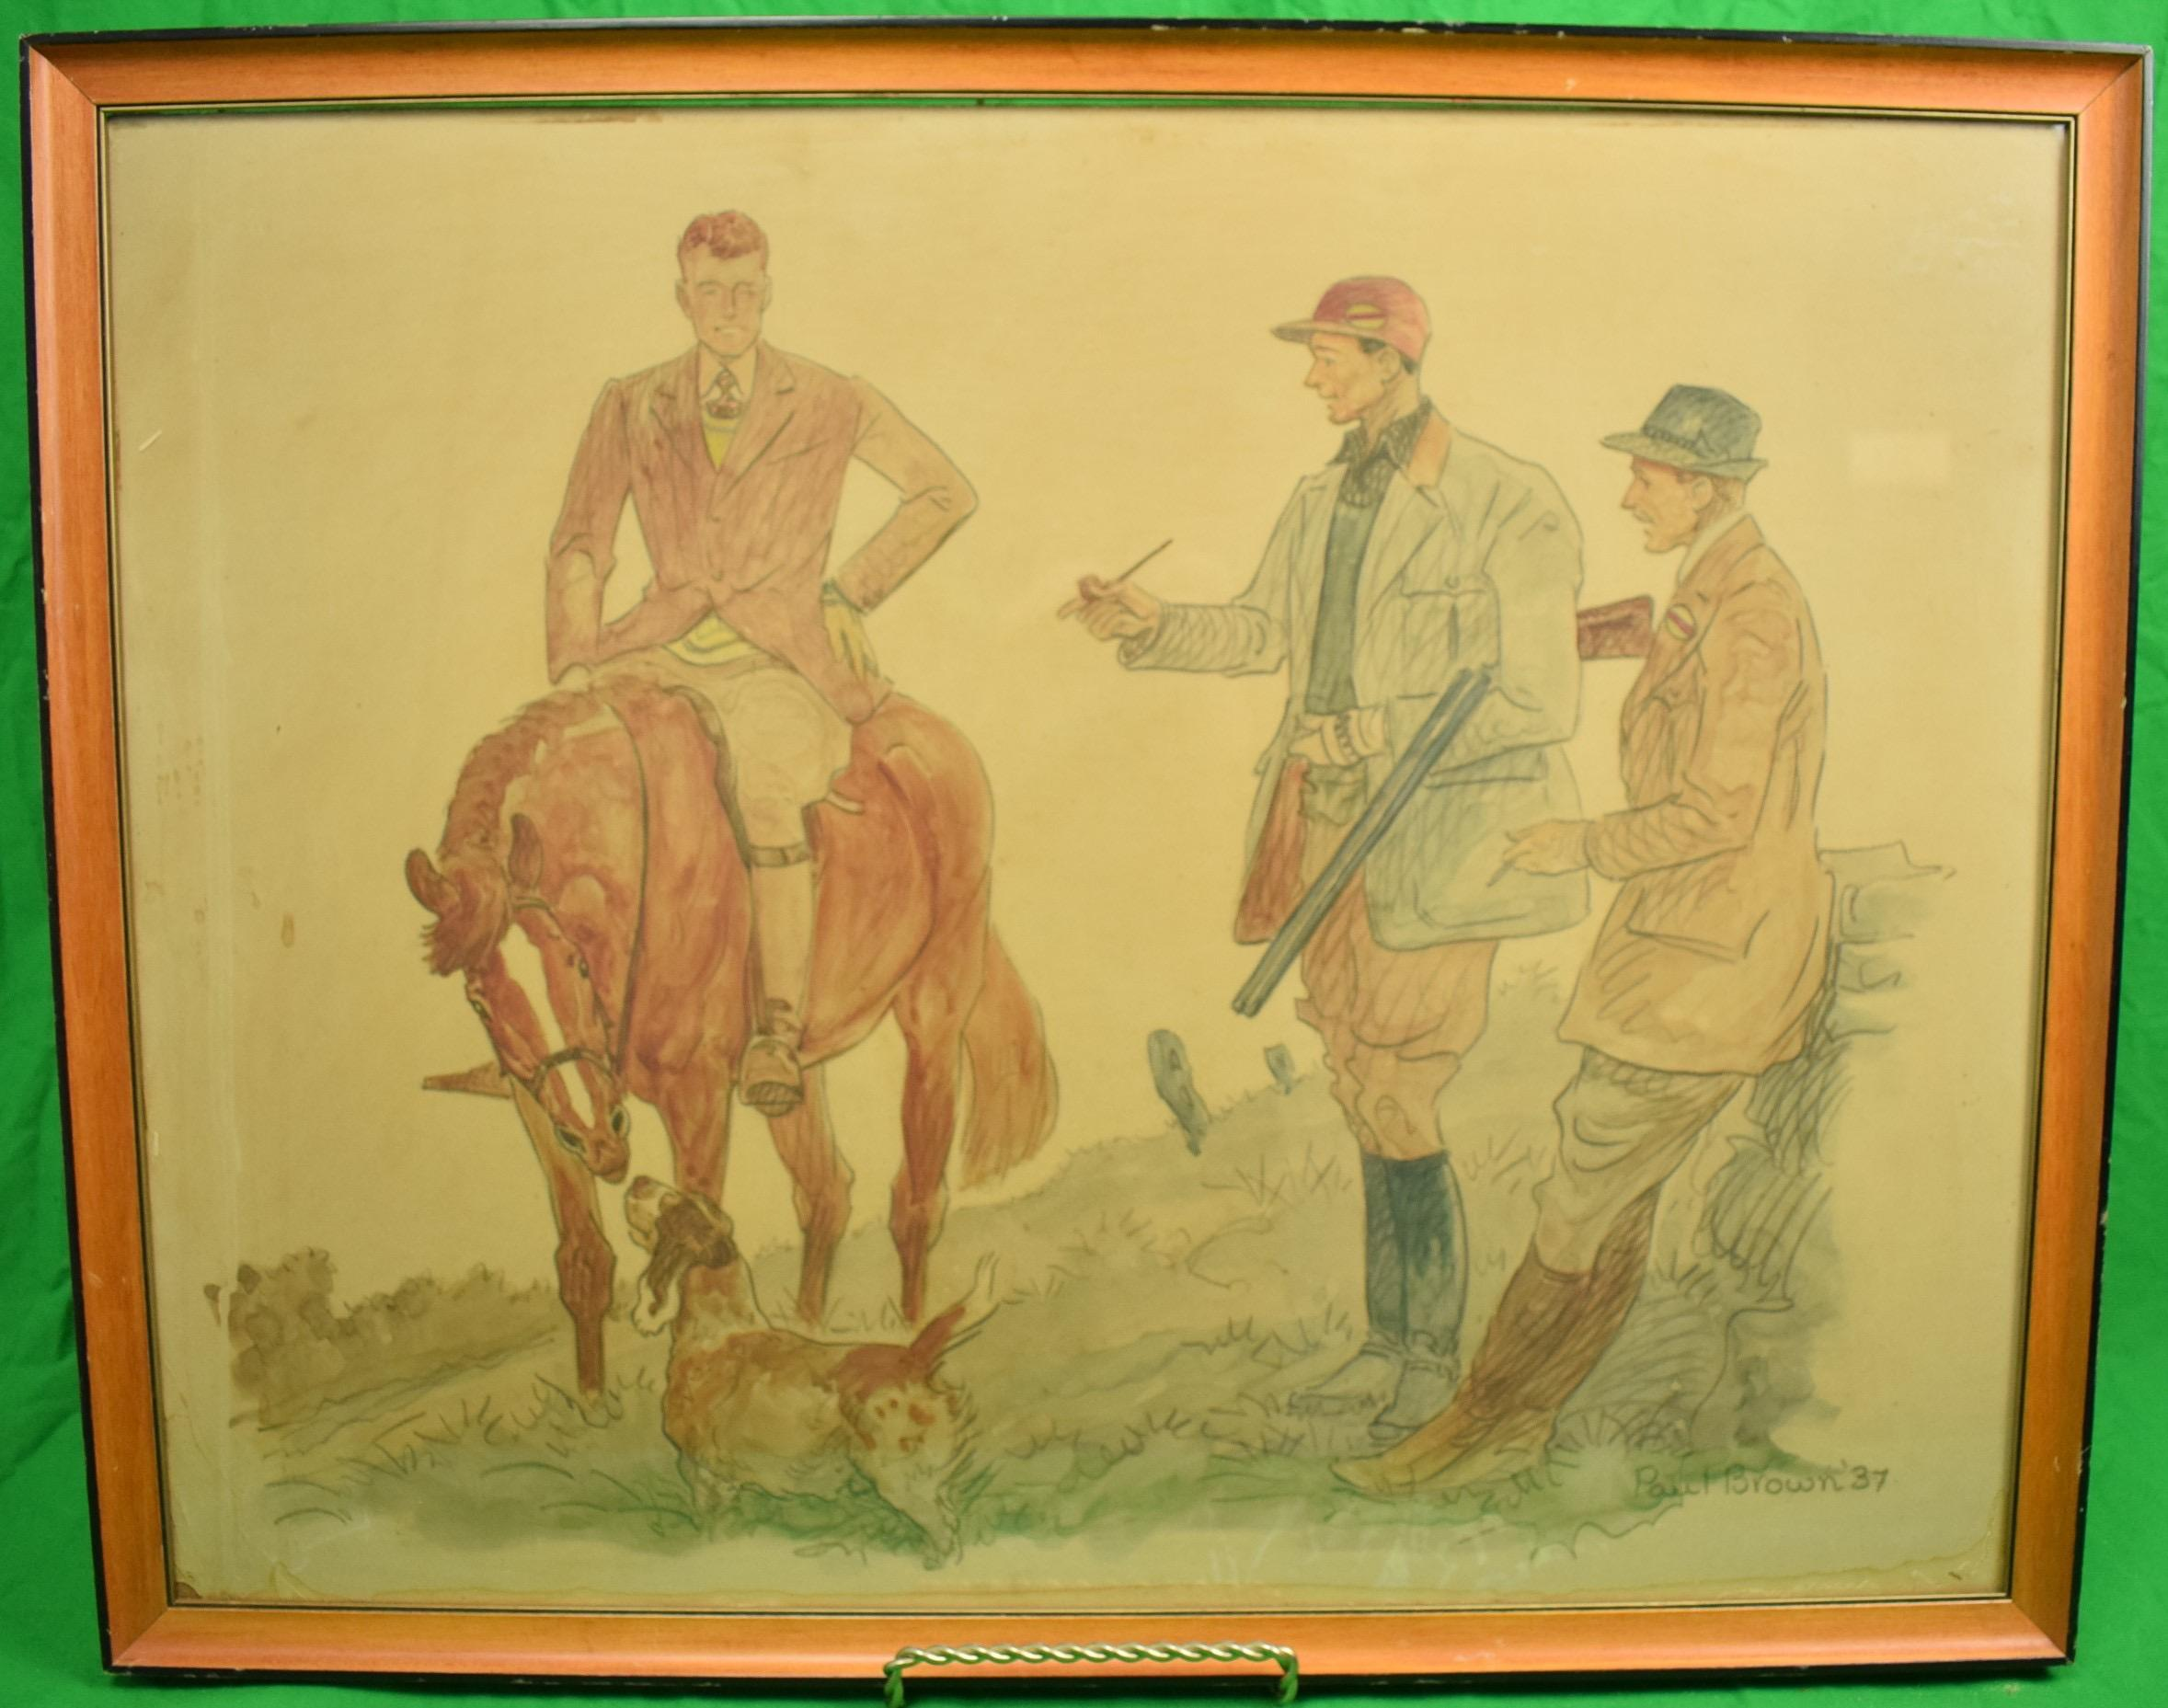 Hunters & Hound Watercolour & Ink on Paper 1937 by Paul Desmond Brown